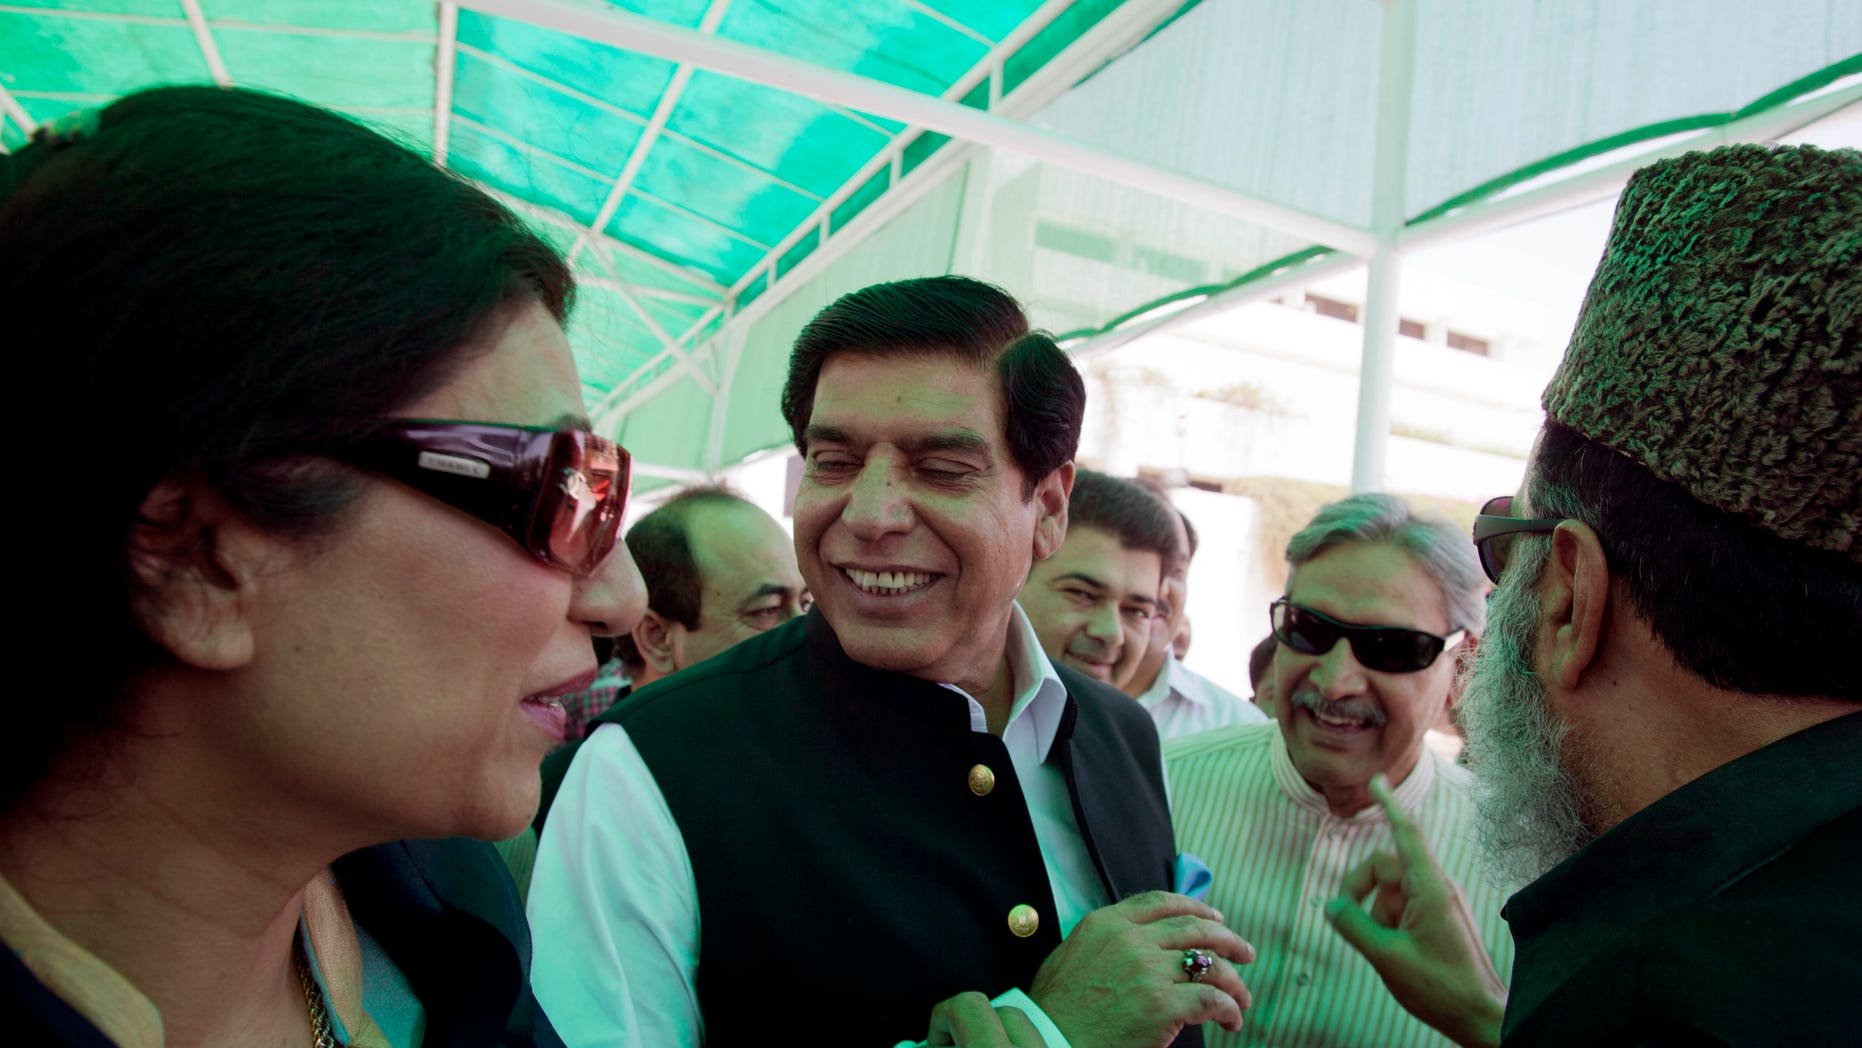 June 21, 2012: In this photo, Pakistani lawmakers greet Raja Pervaiz Ashraf, second from left, as he leaves the Parliament in Islamabad, Pakistan after filing his nomination as a  candidate for the premiership.